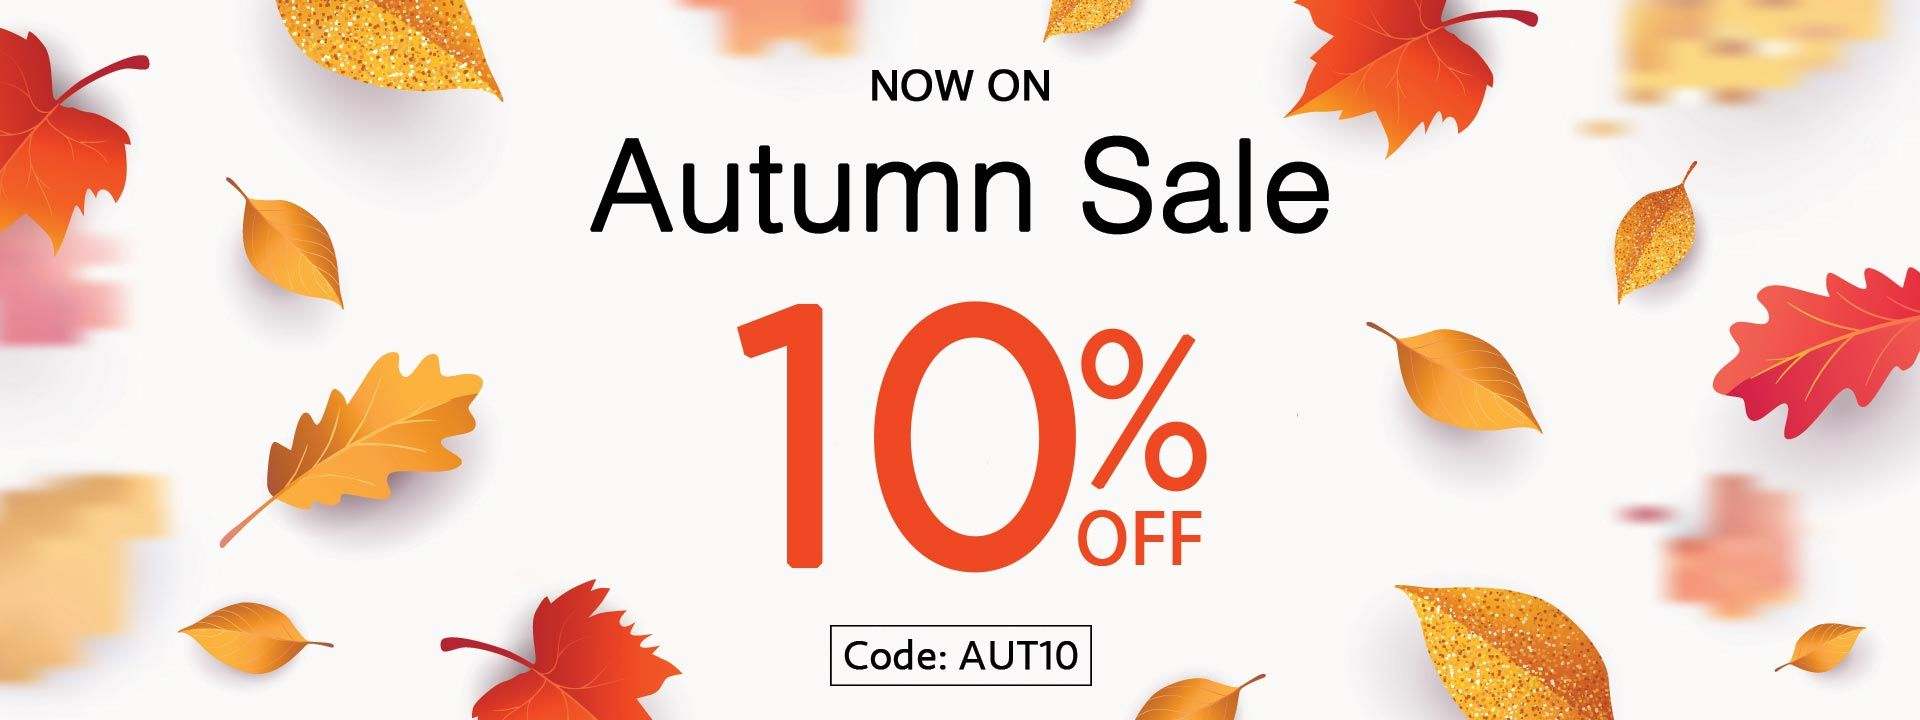 Autumn Sale - 10% Off Everything